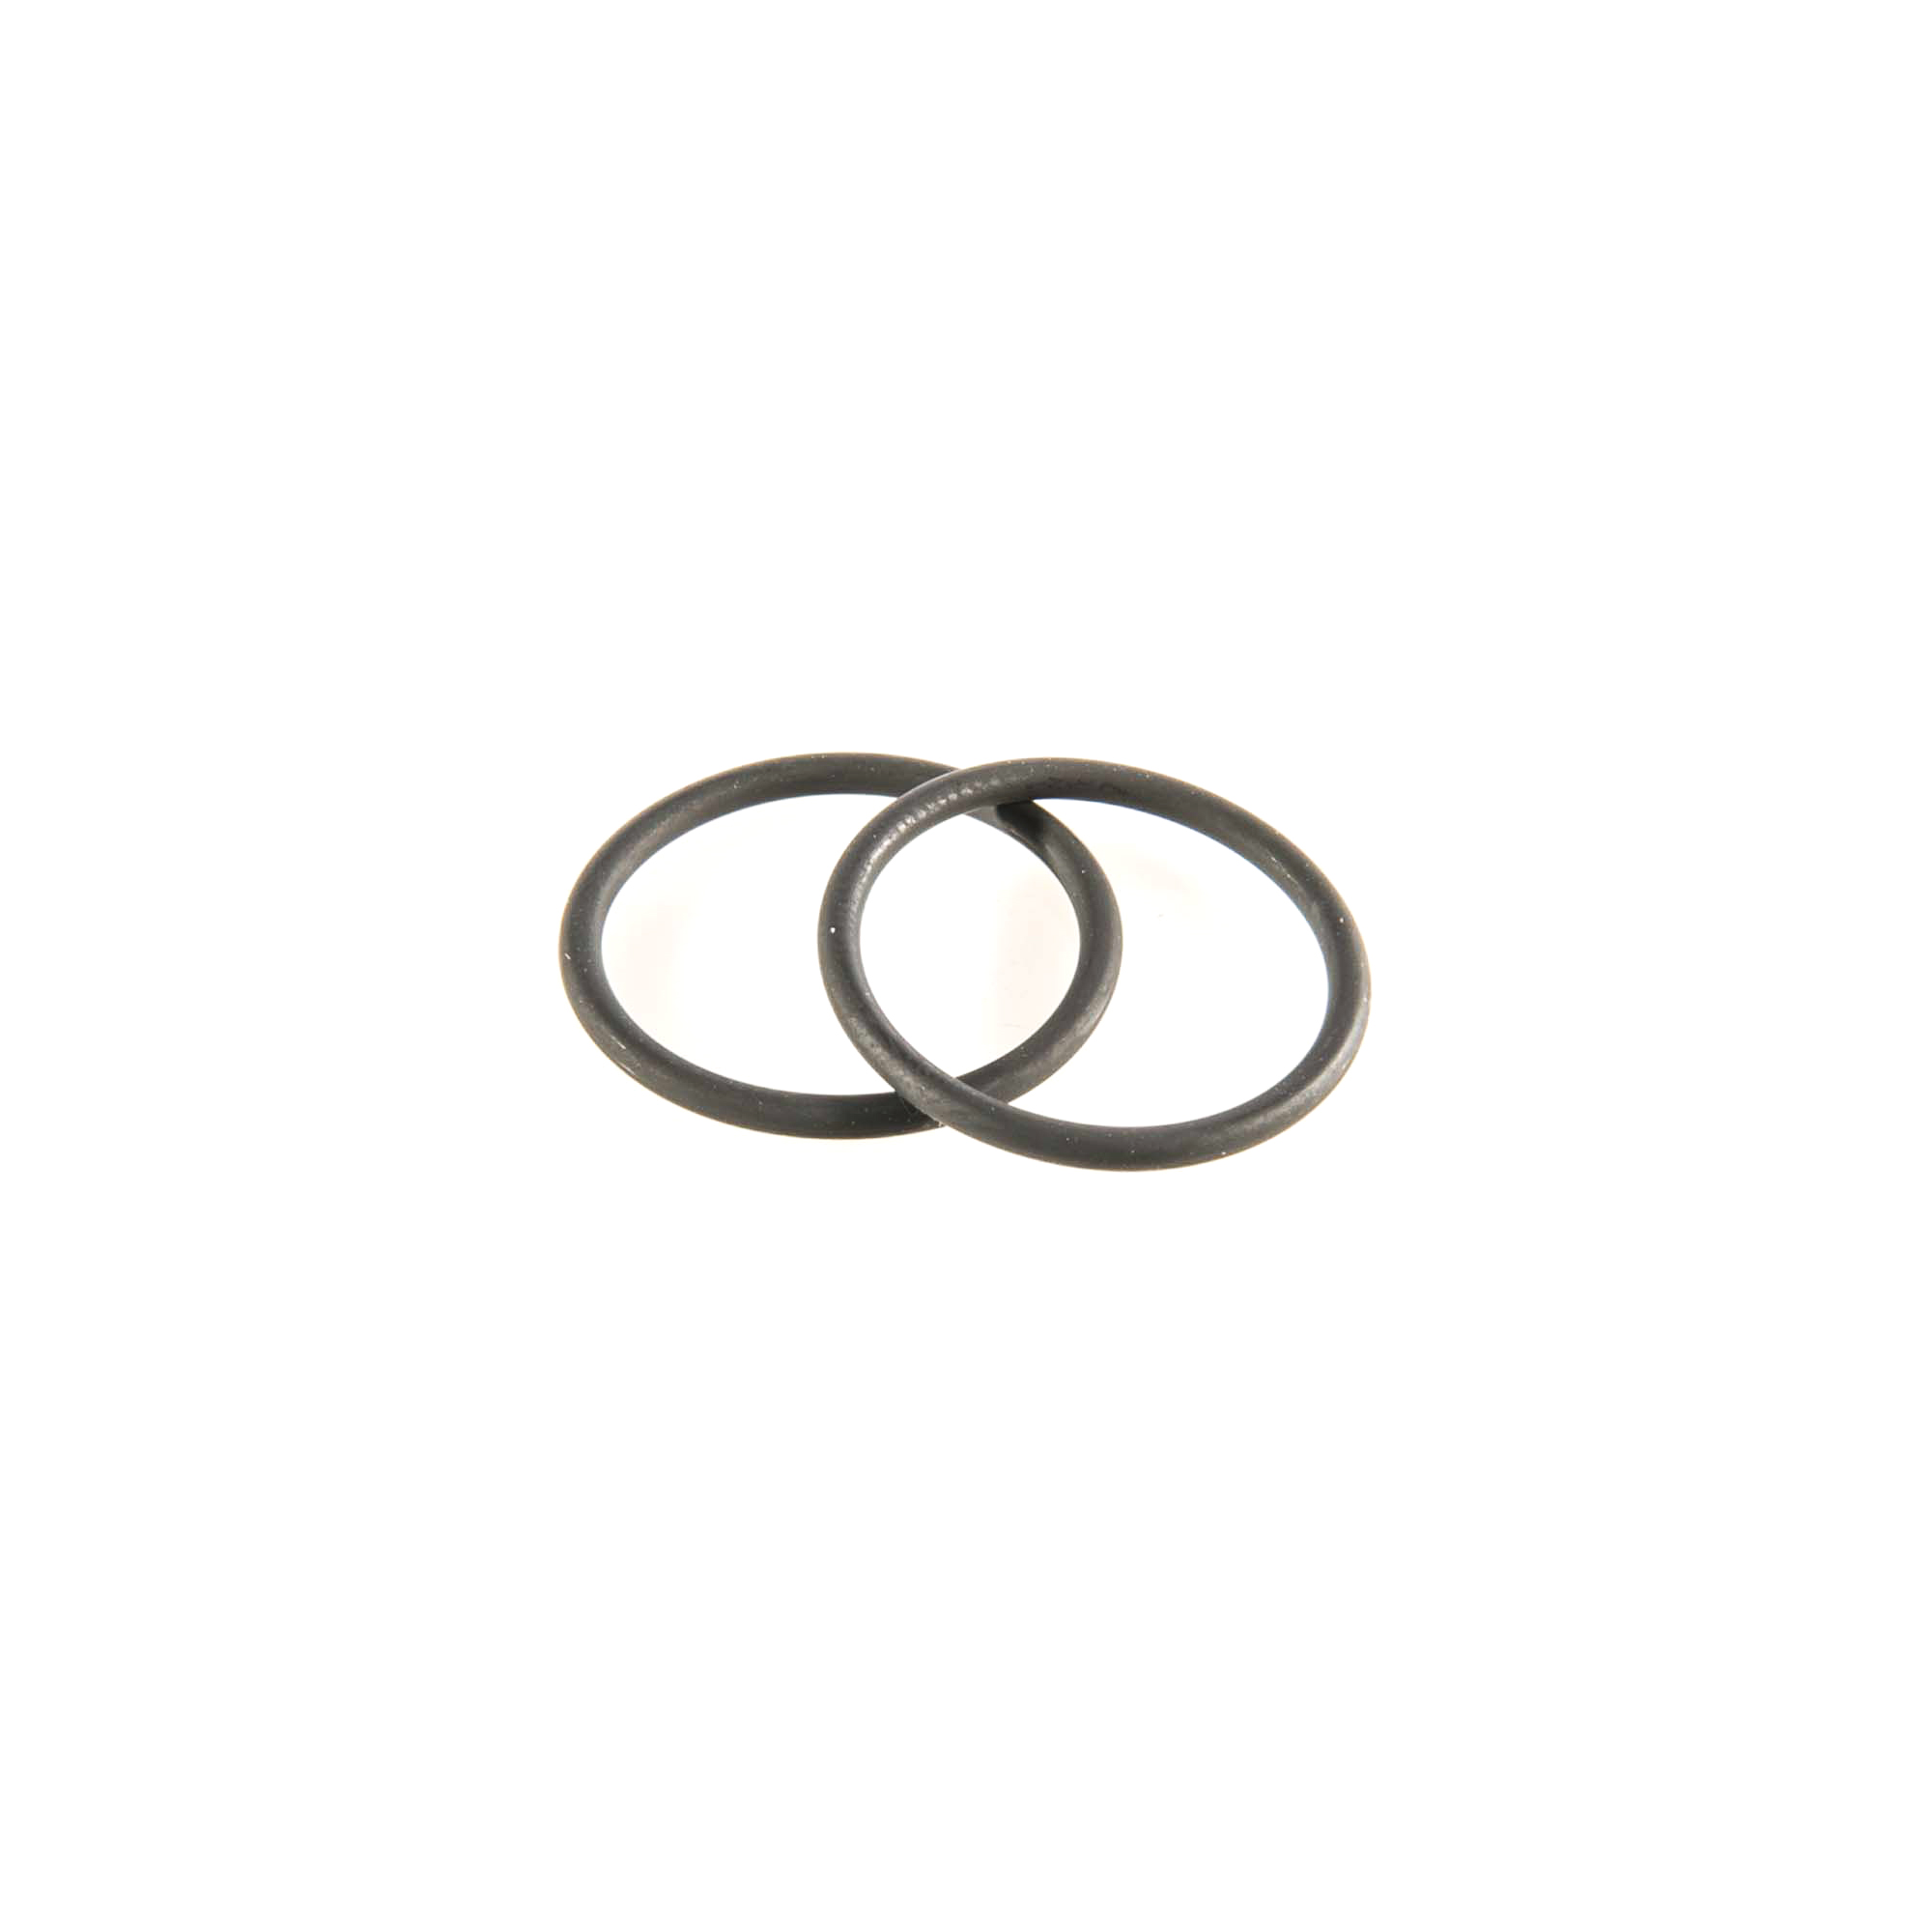 Sco O-ring Booster Pack